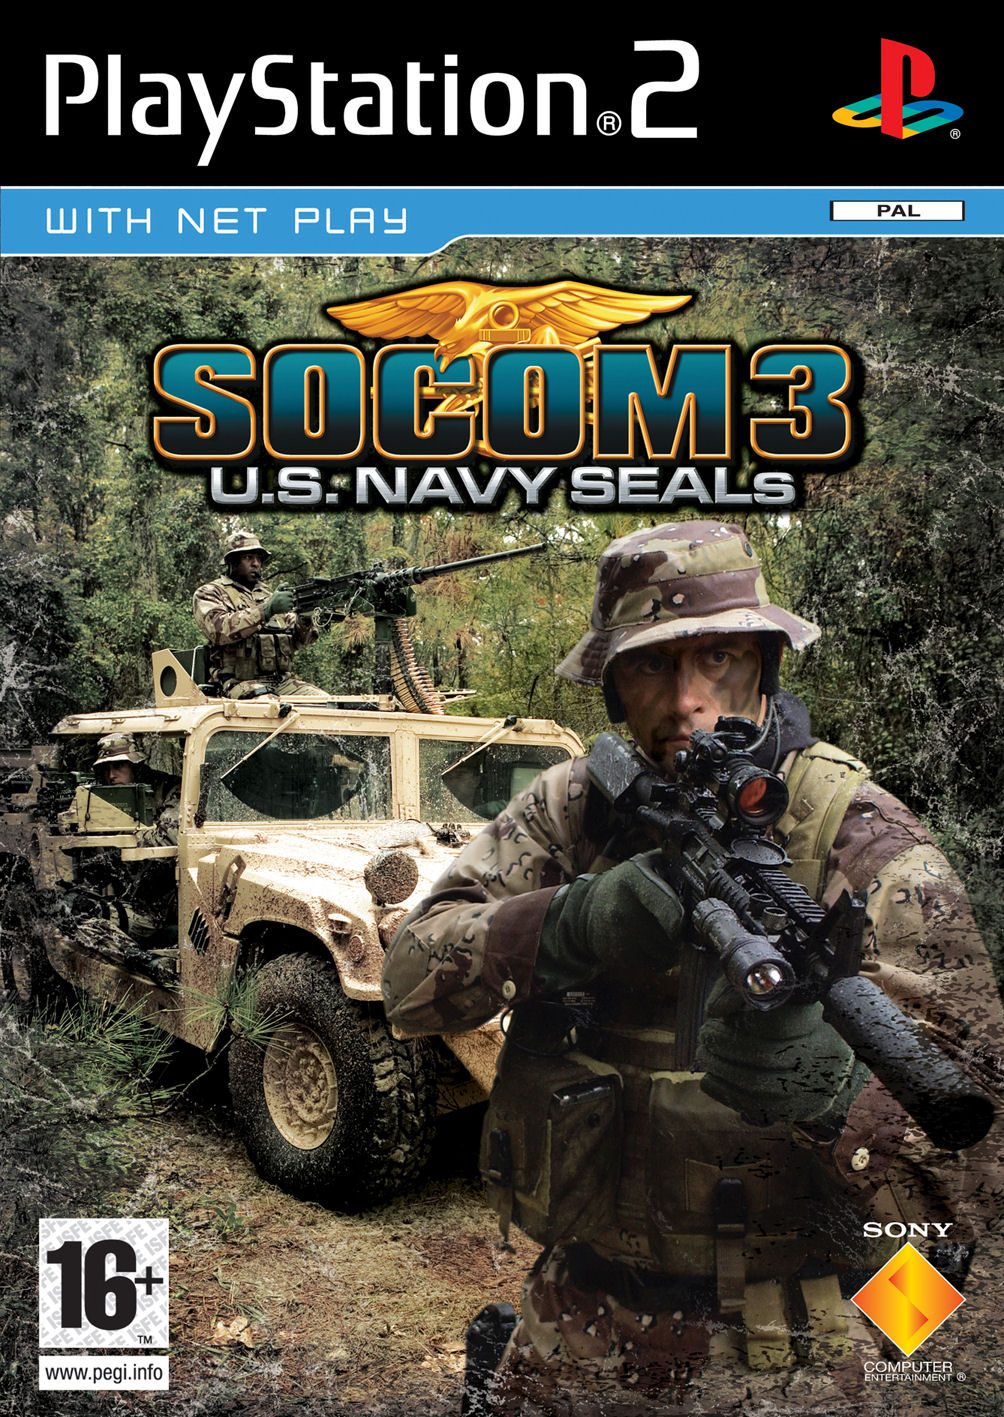 socom 3 us navy seals socom wiki fandom powered by wikia rh socom wikia com PSP Sony Headphones Socom Tactical Strike PSP